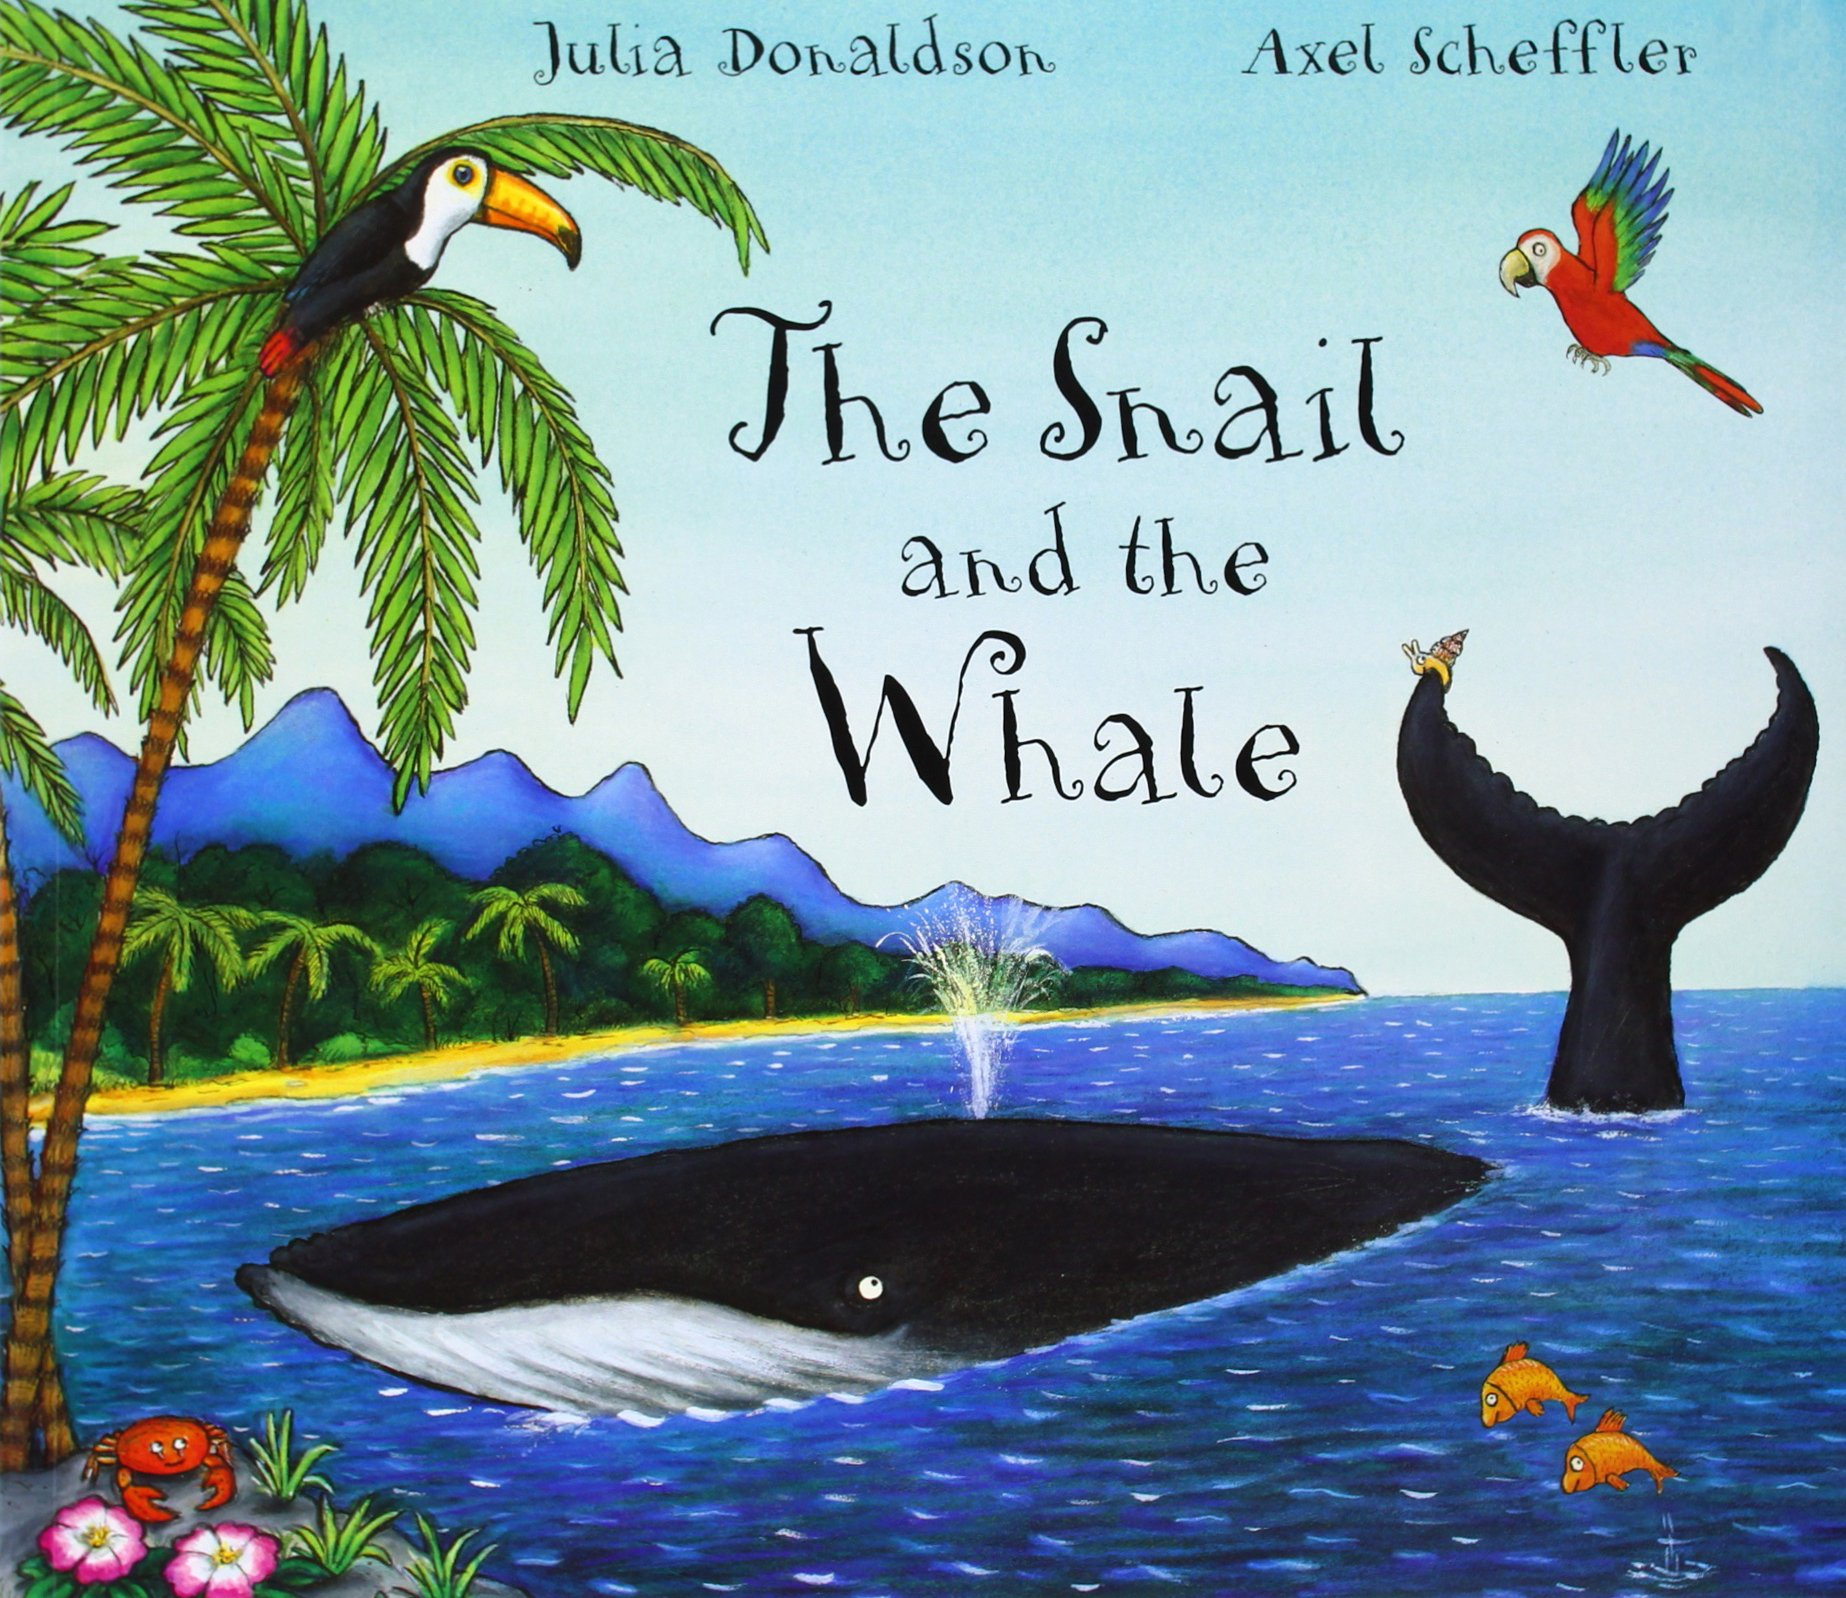 The Snail And the Whale ISBN-13 9780142405802